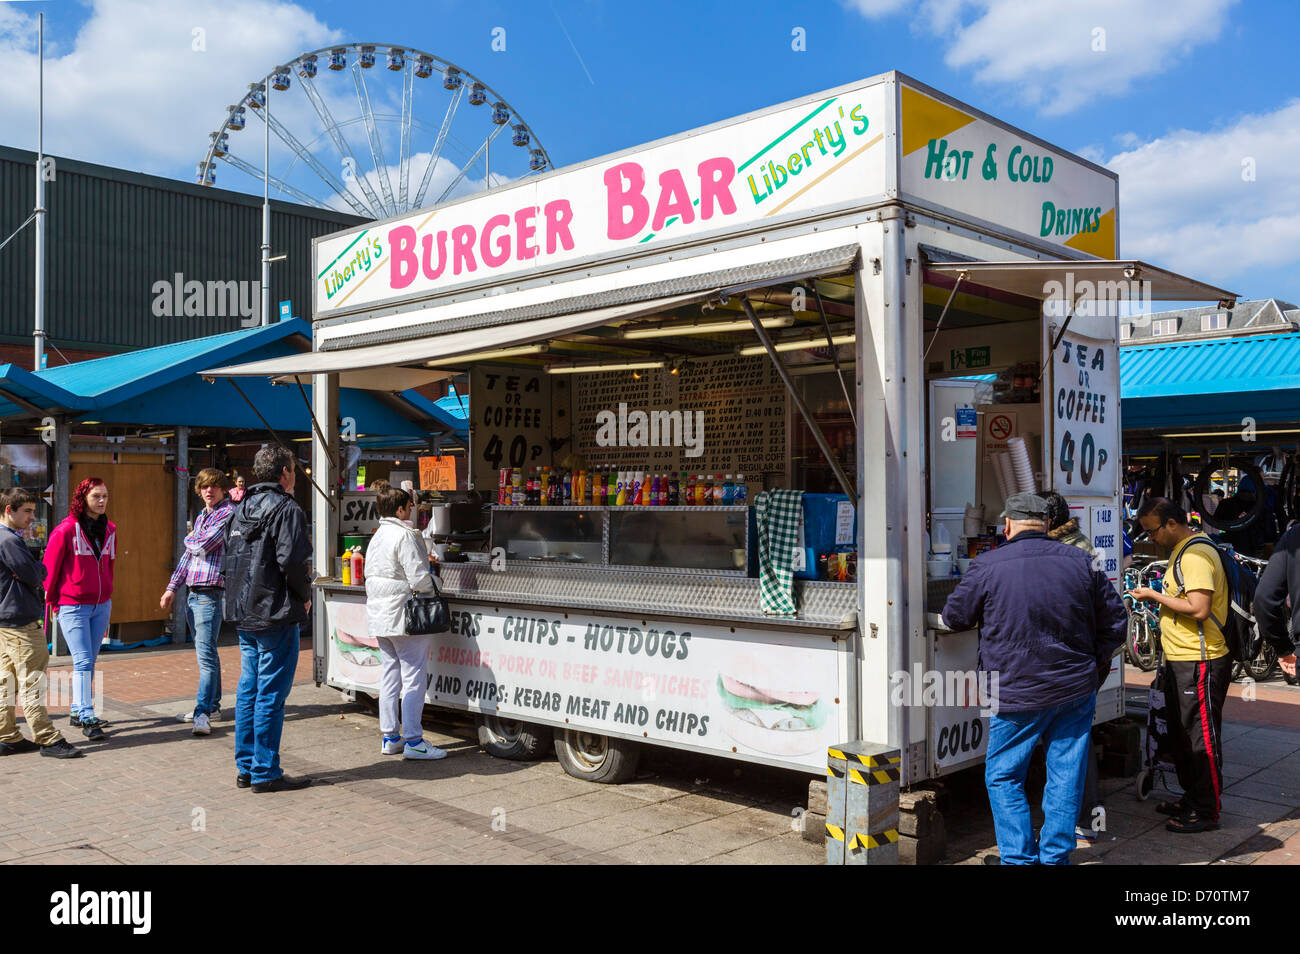 Burger van (food truck) in the Open Market at Kirkgate Market, Leeds, West Yorkshire, UK - Stock Image